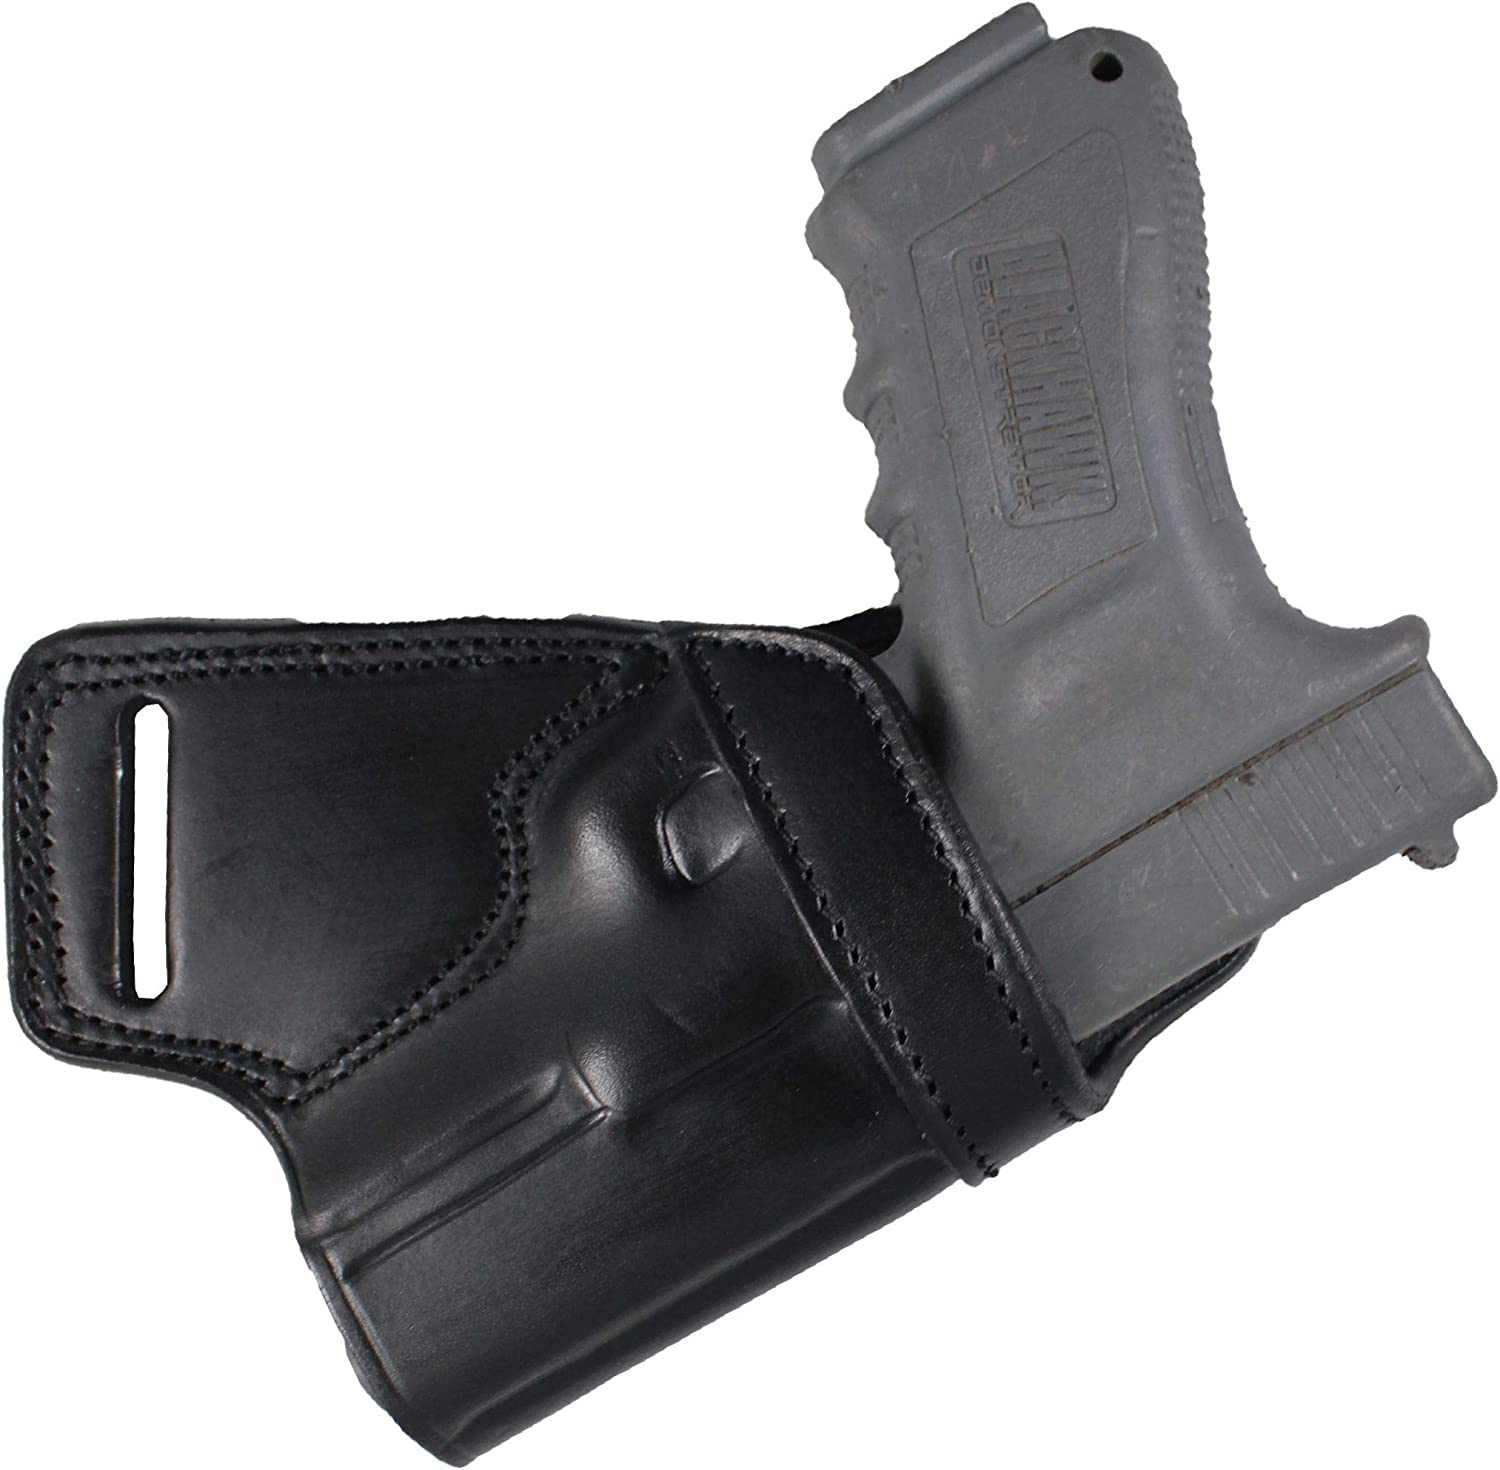 YT HOBBY Premium Handmade Leather Small Holster Gun Super sale period limited of Back Max 53% OFF SOB